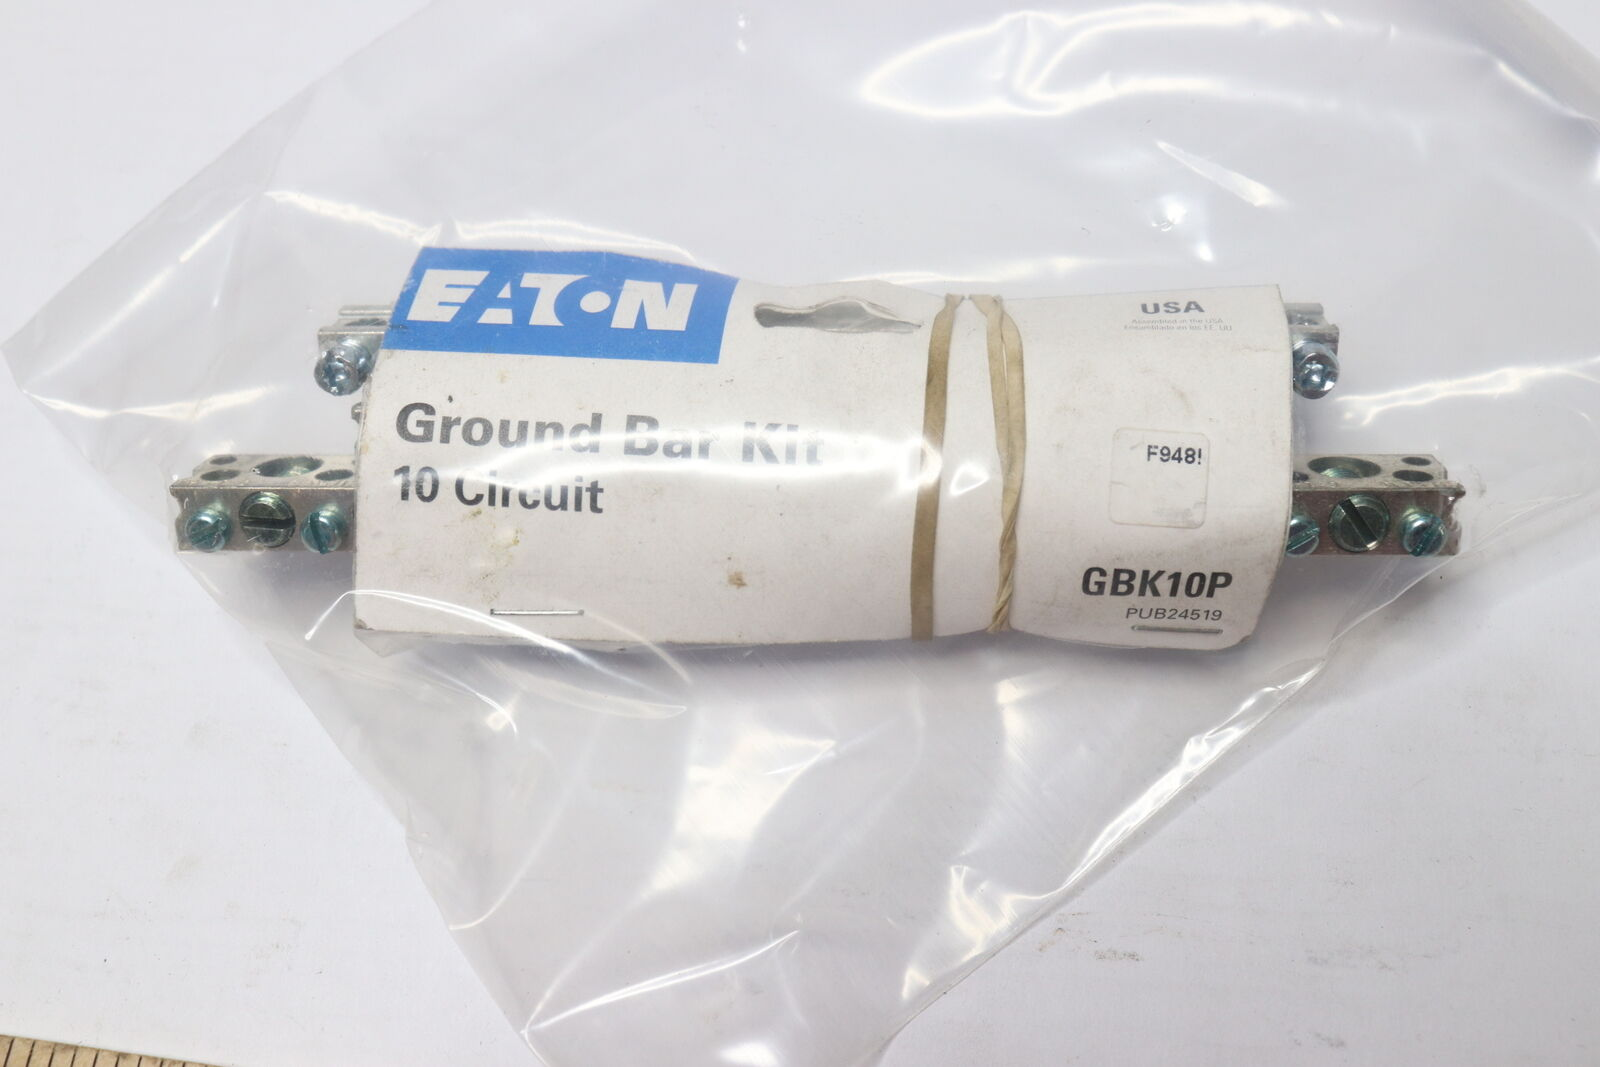 Eaton 10-Terminal BR Aluminum Ground Bar Kit GBK10P 1 Each